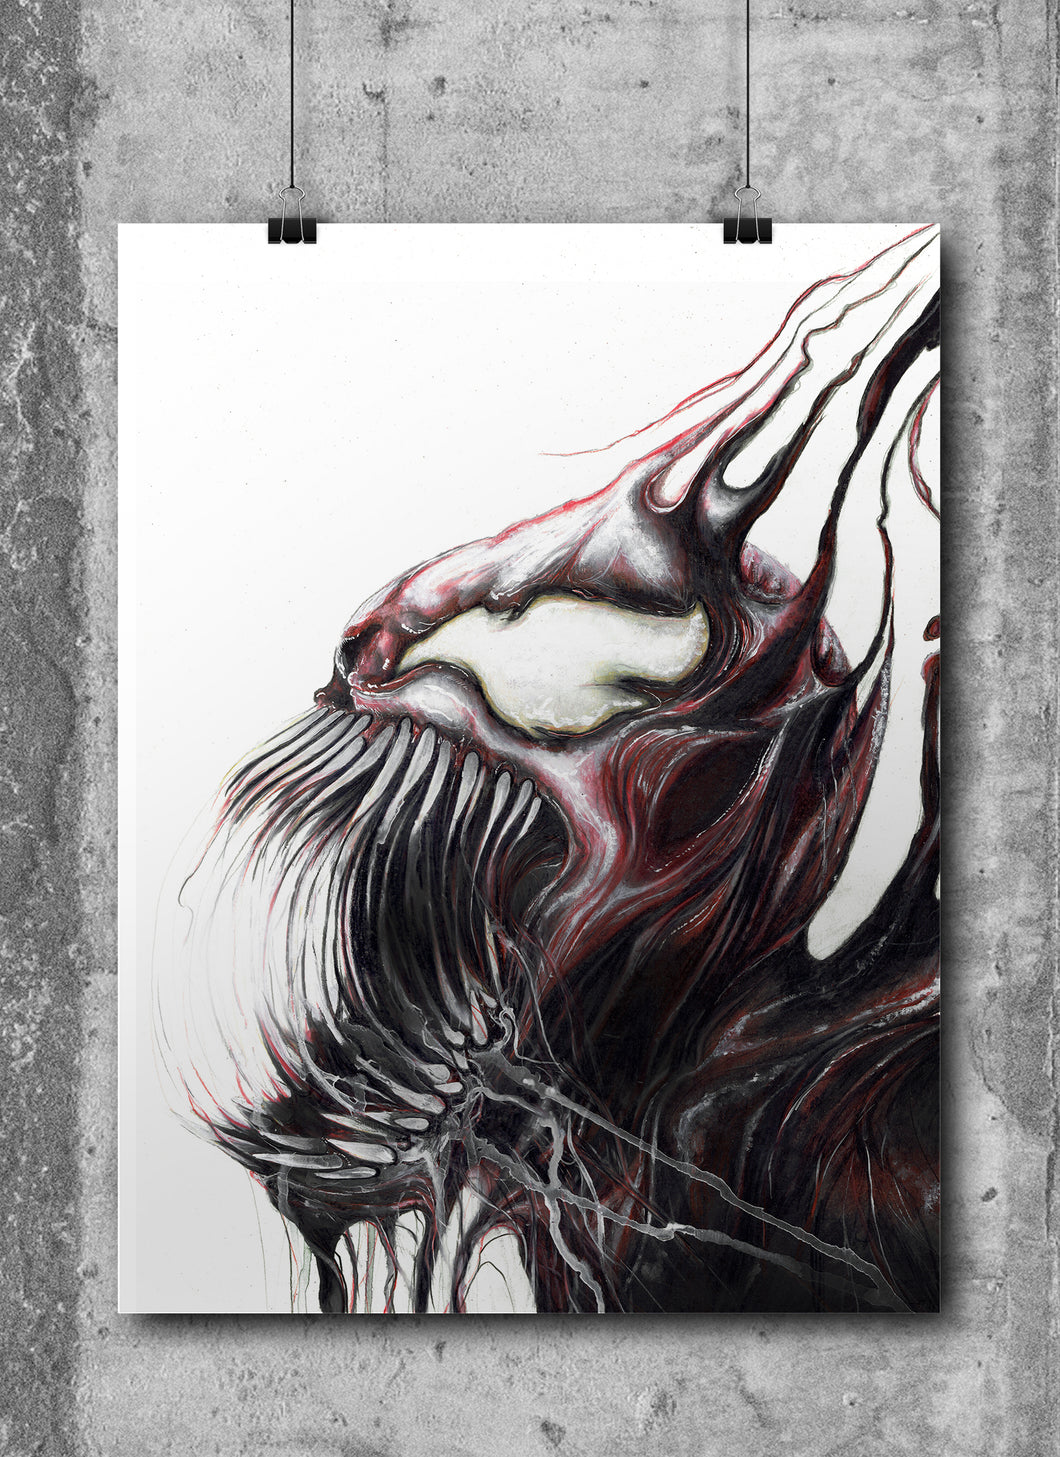 Carnage by Wil Shrike